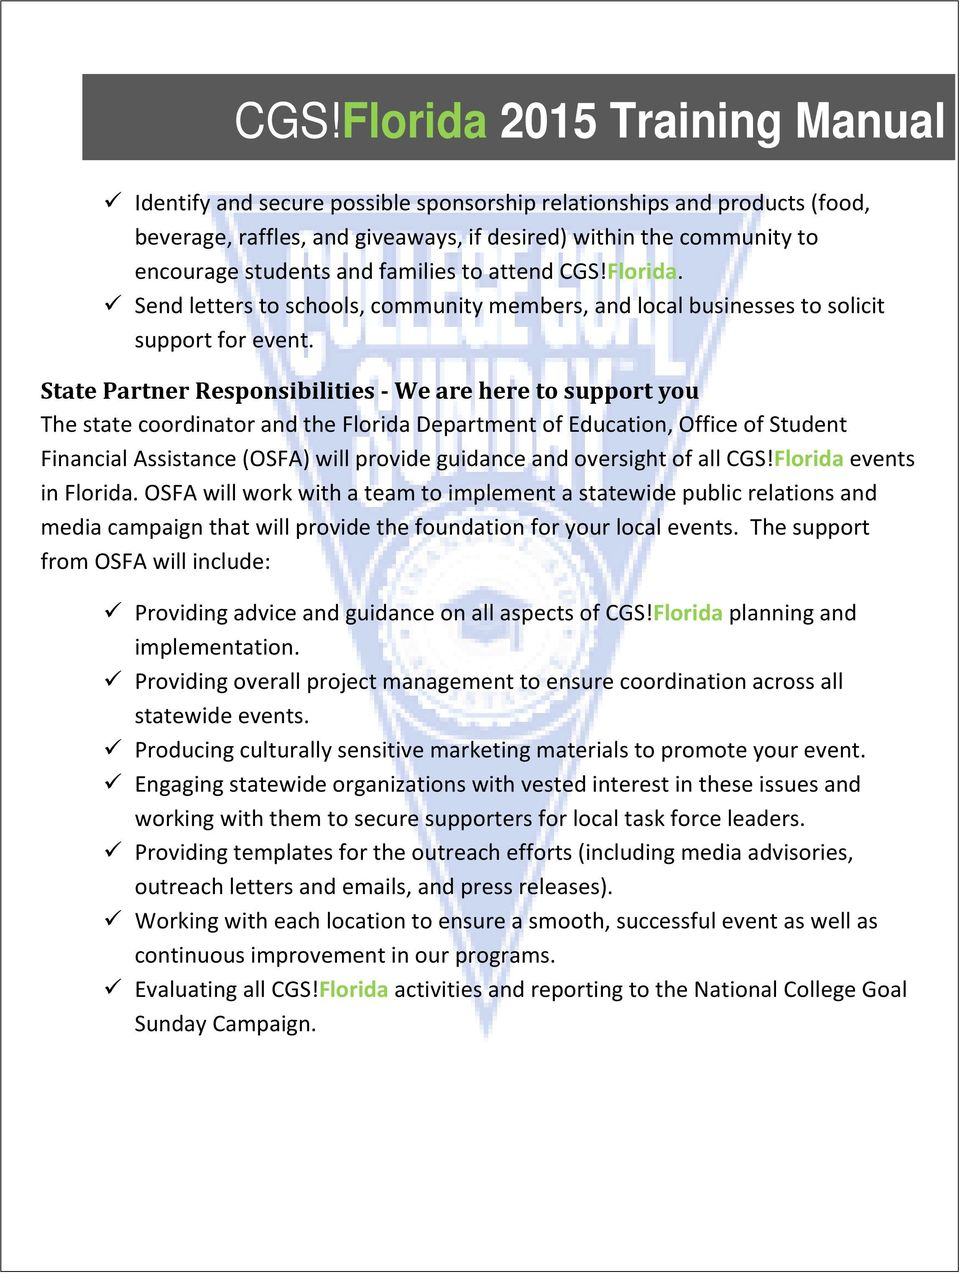 State Partner Responsibilities - We are here to support you The state coordinator and the Florida Department of Education, Office of Student Financial Assistance (OSFA) will provide guidance and